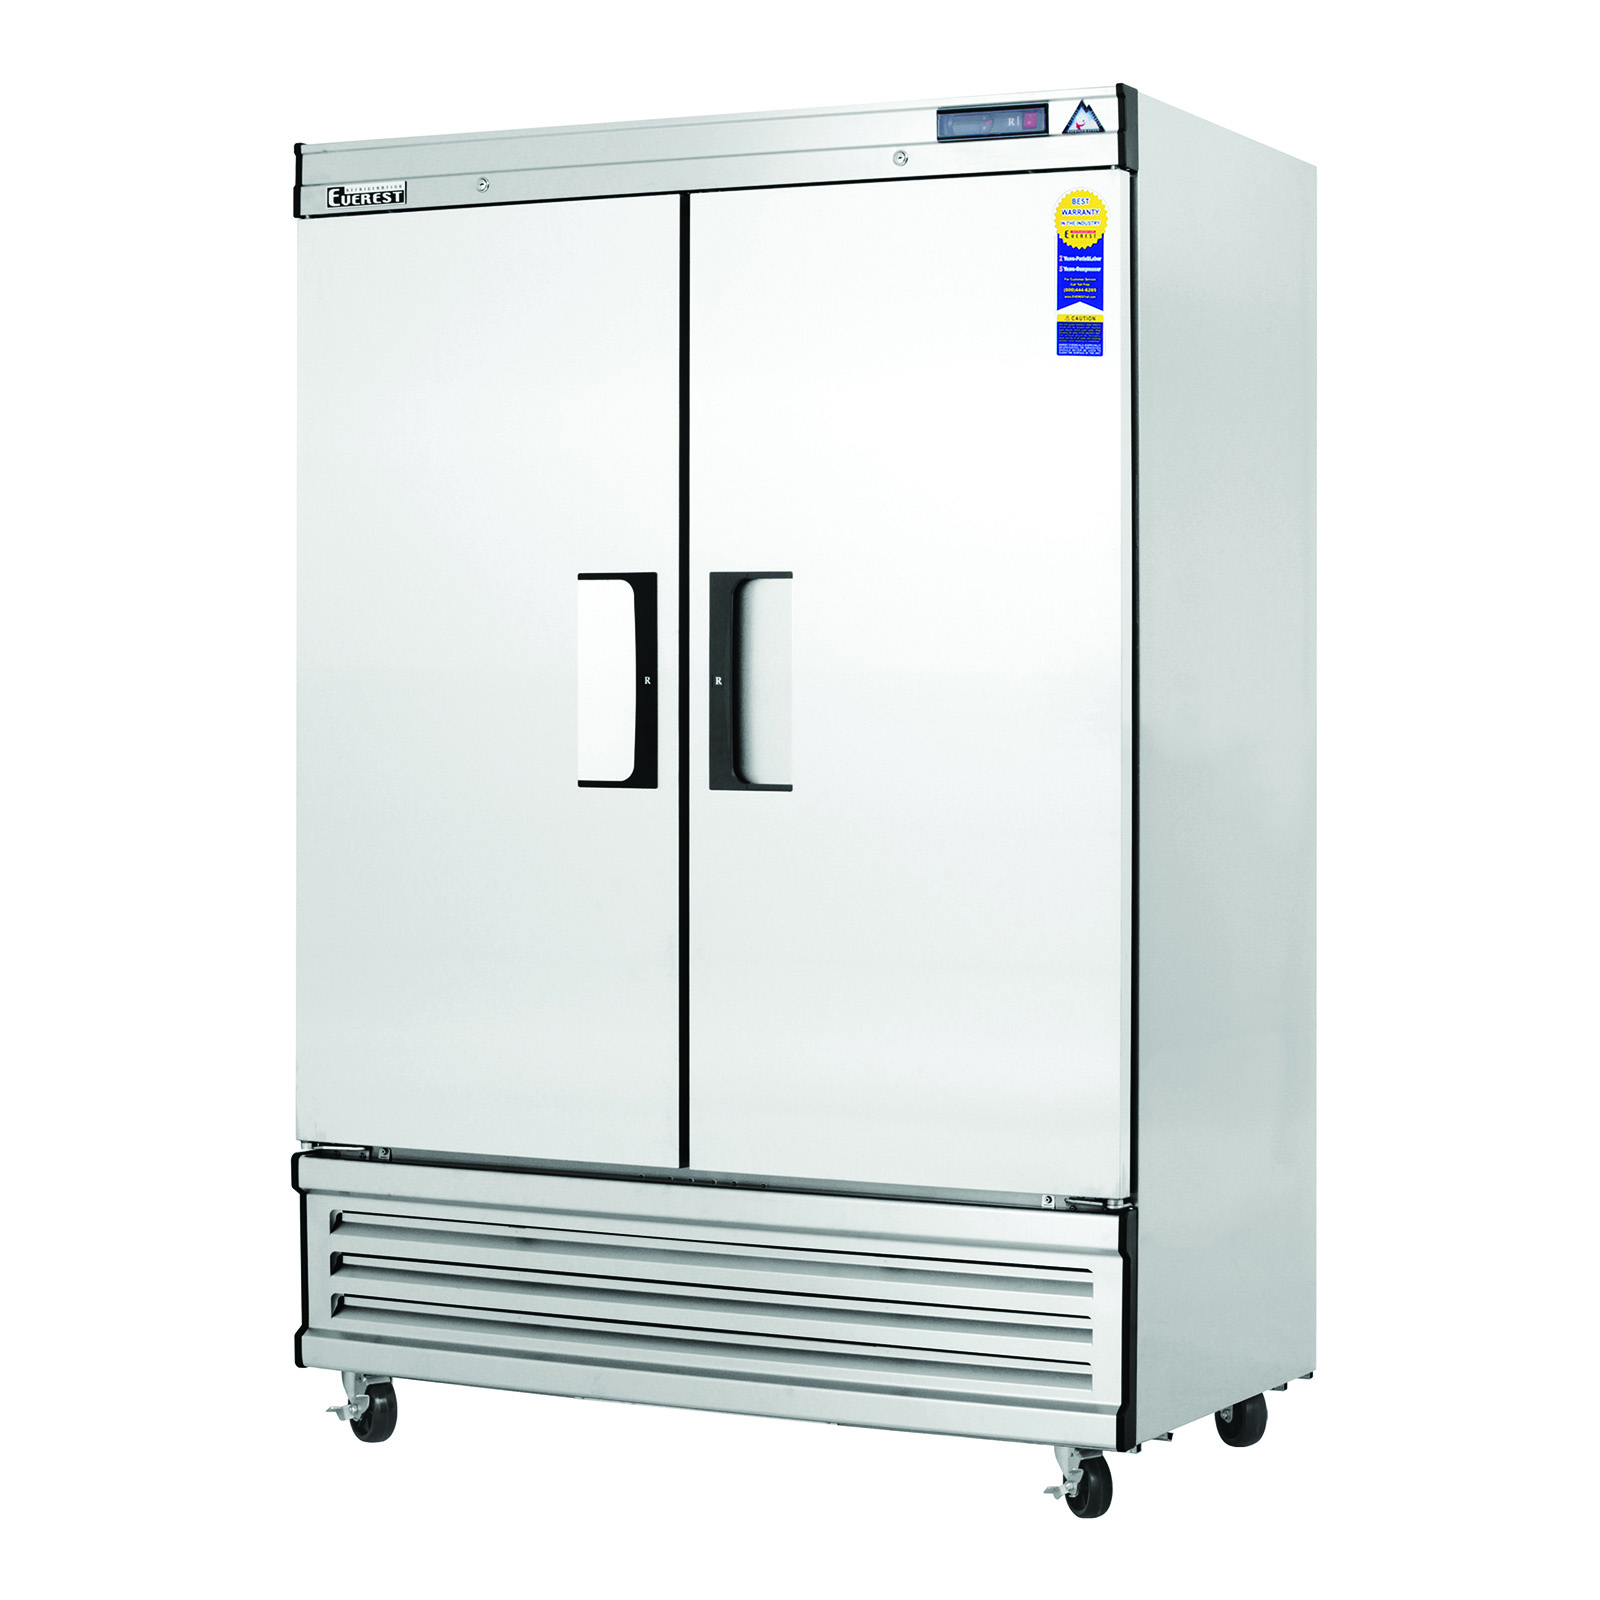 Everest Refrigeration EBSF2 freezer, reach-in